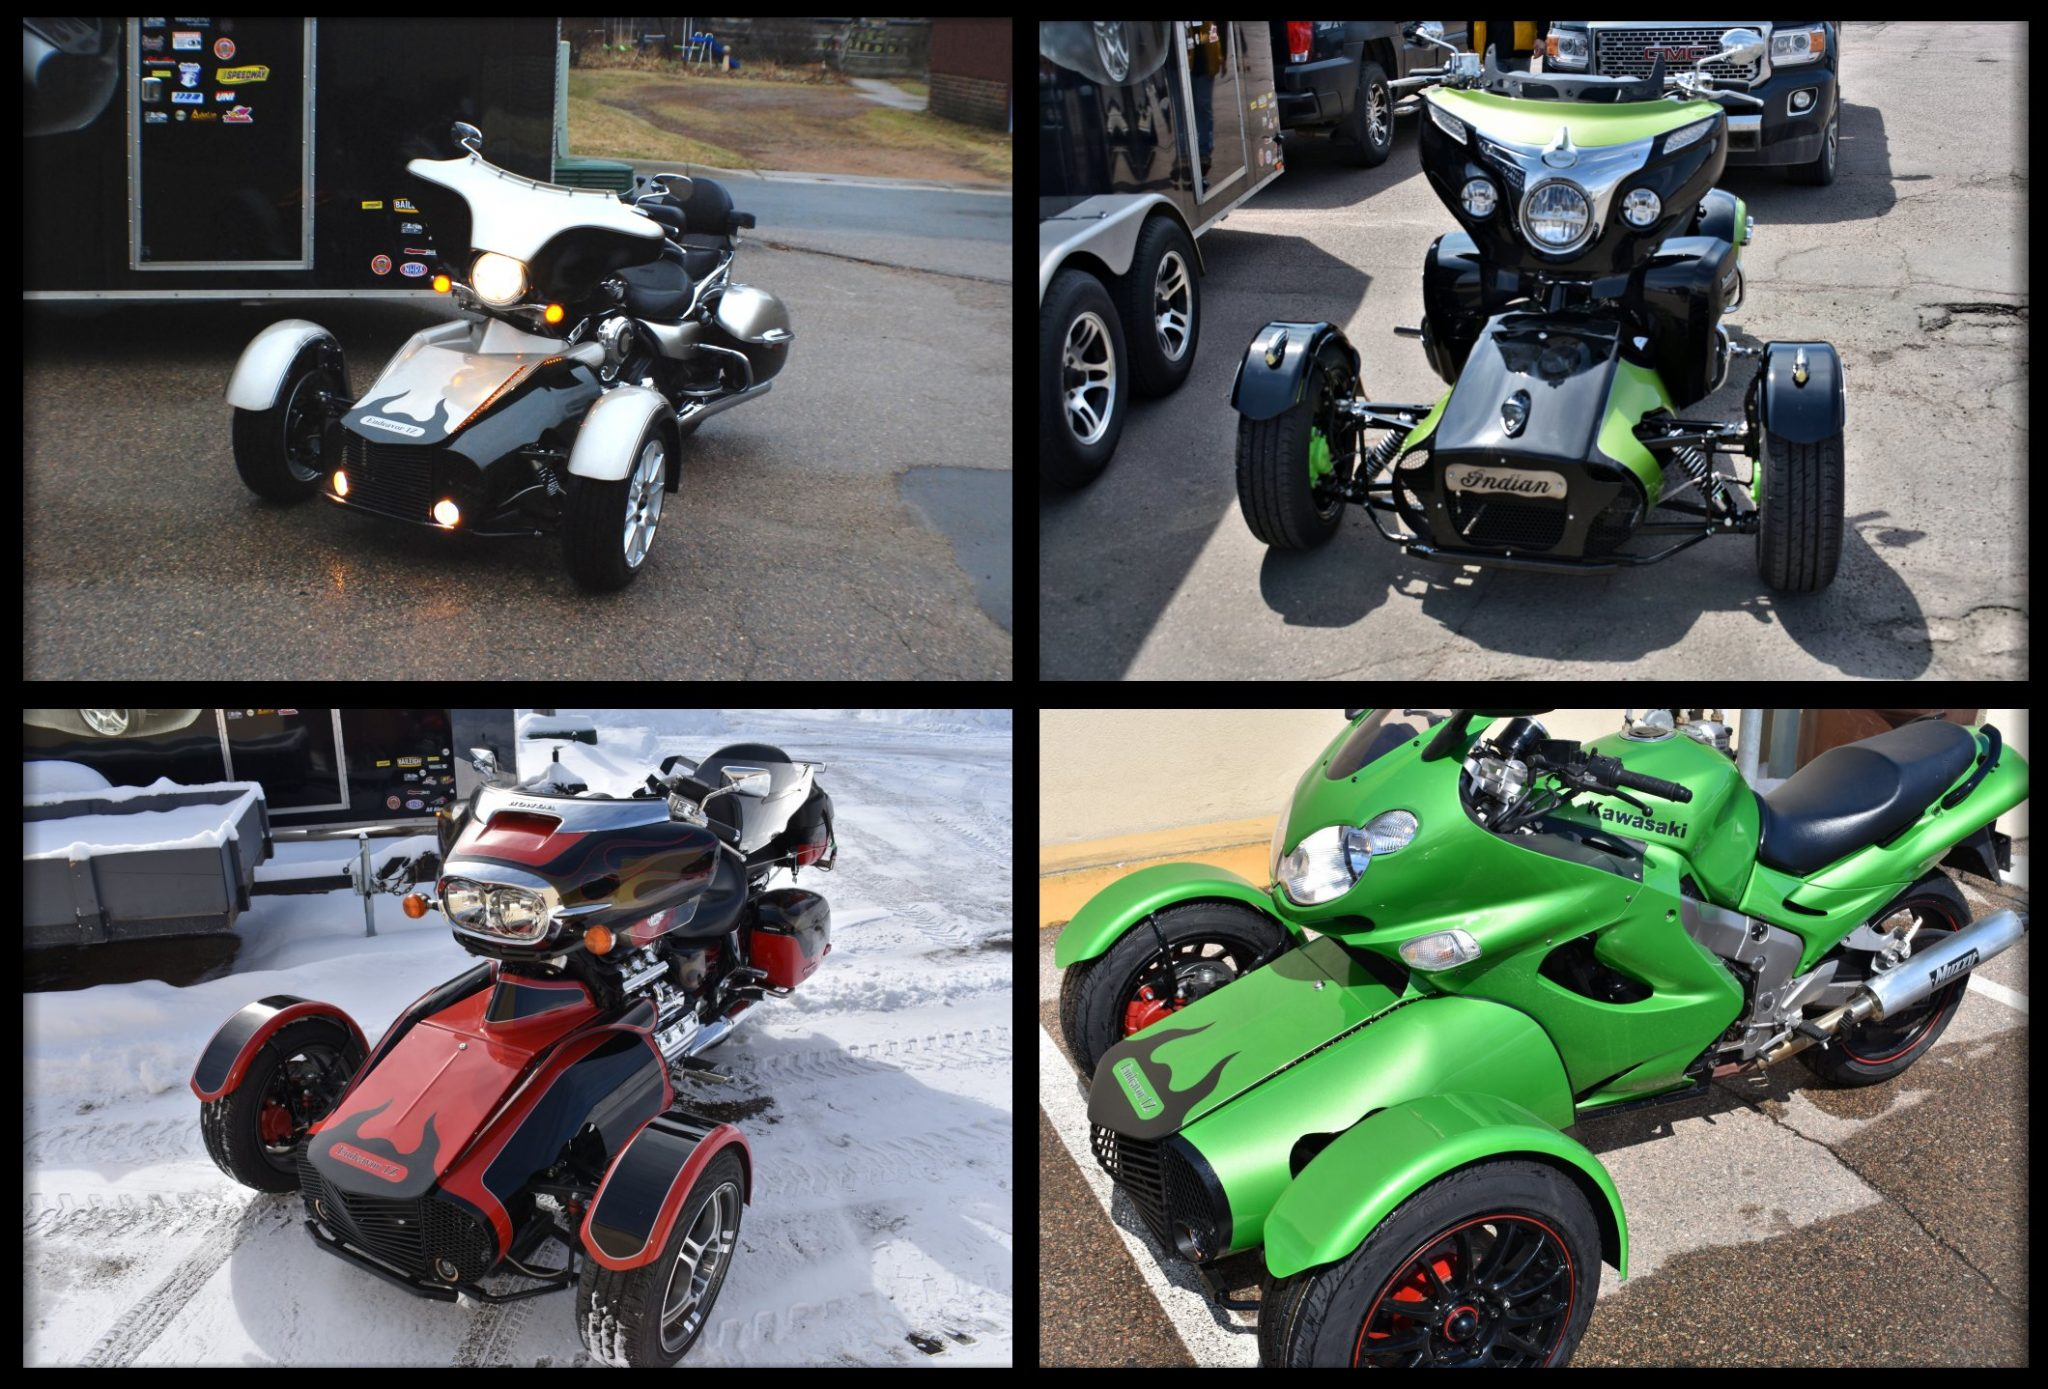 Home Endeavor Trikes Motor Trike Wiring Diagram Is A New Creative Way Of Transforming Any Standard Motorcycle To Sport Style Machine Specifically For Those Who Wish Extend The